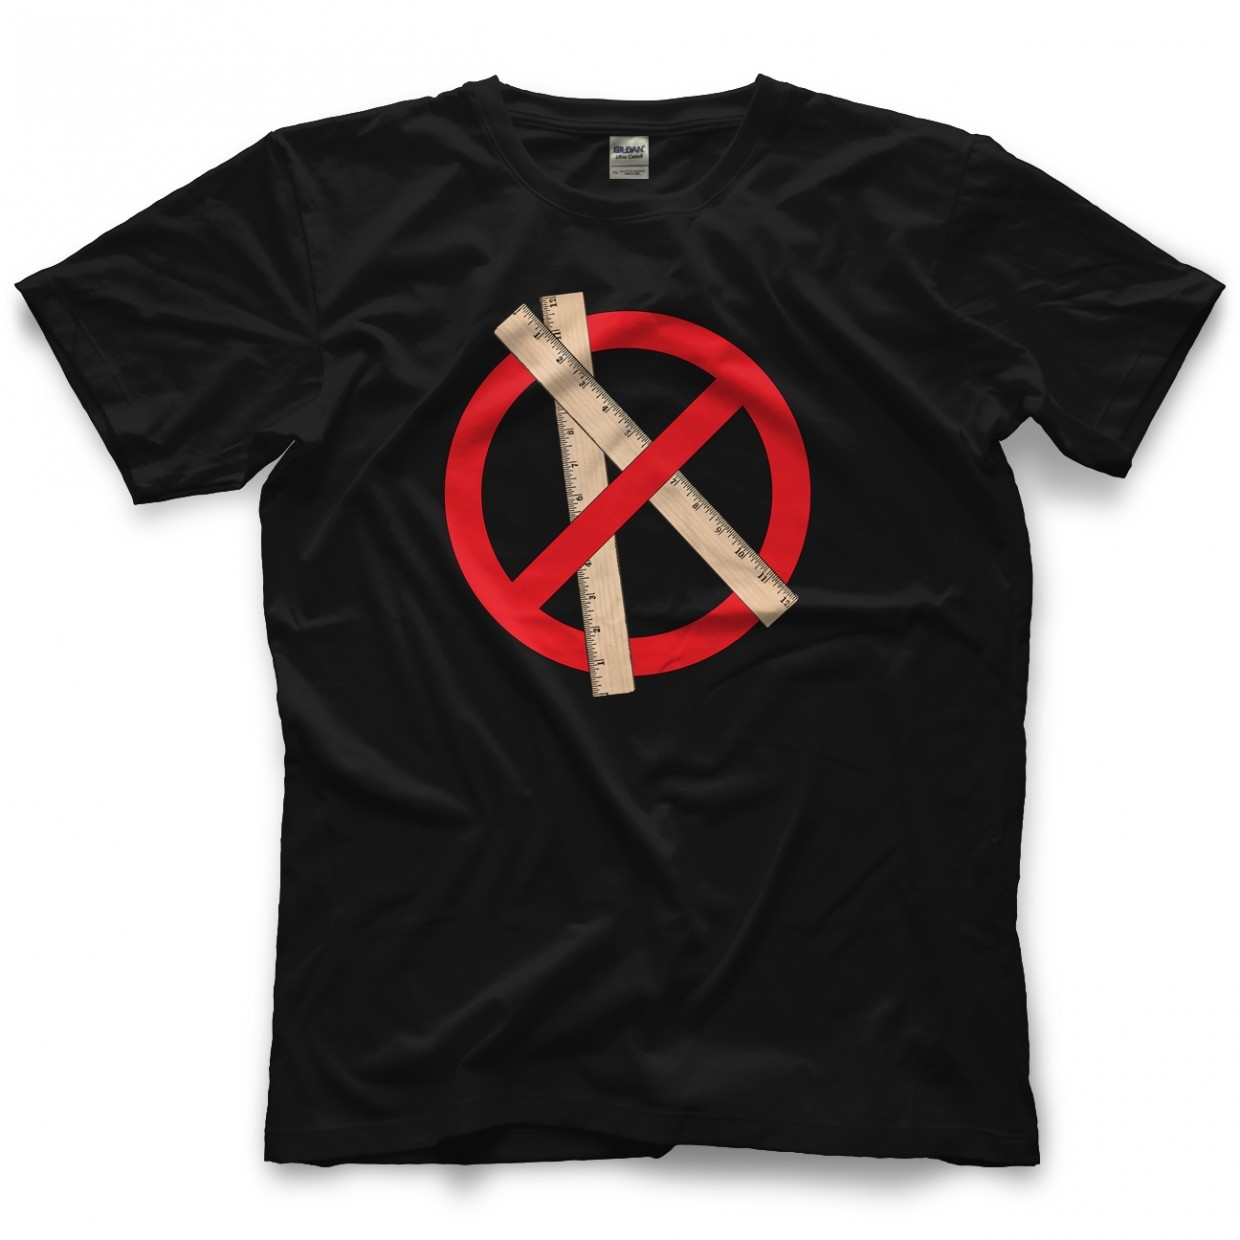 Incite Tees No Rulers Black T-shirt